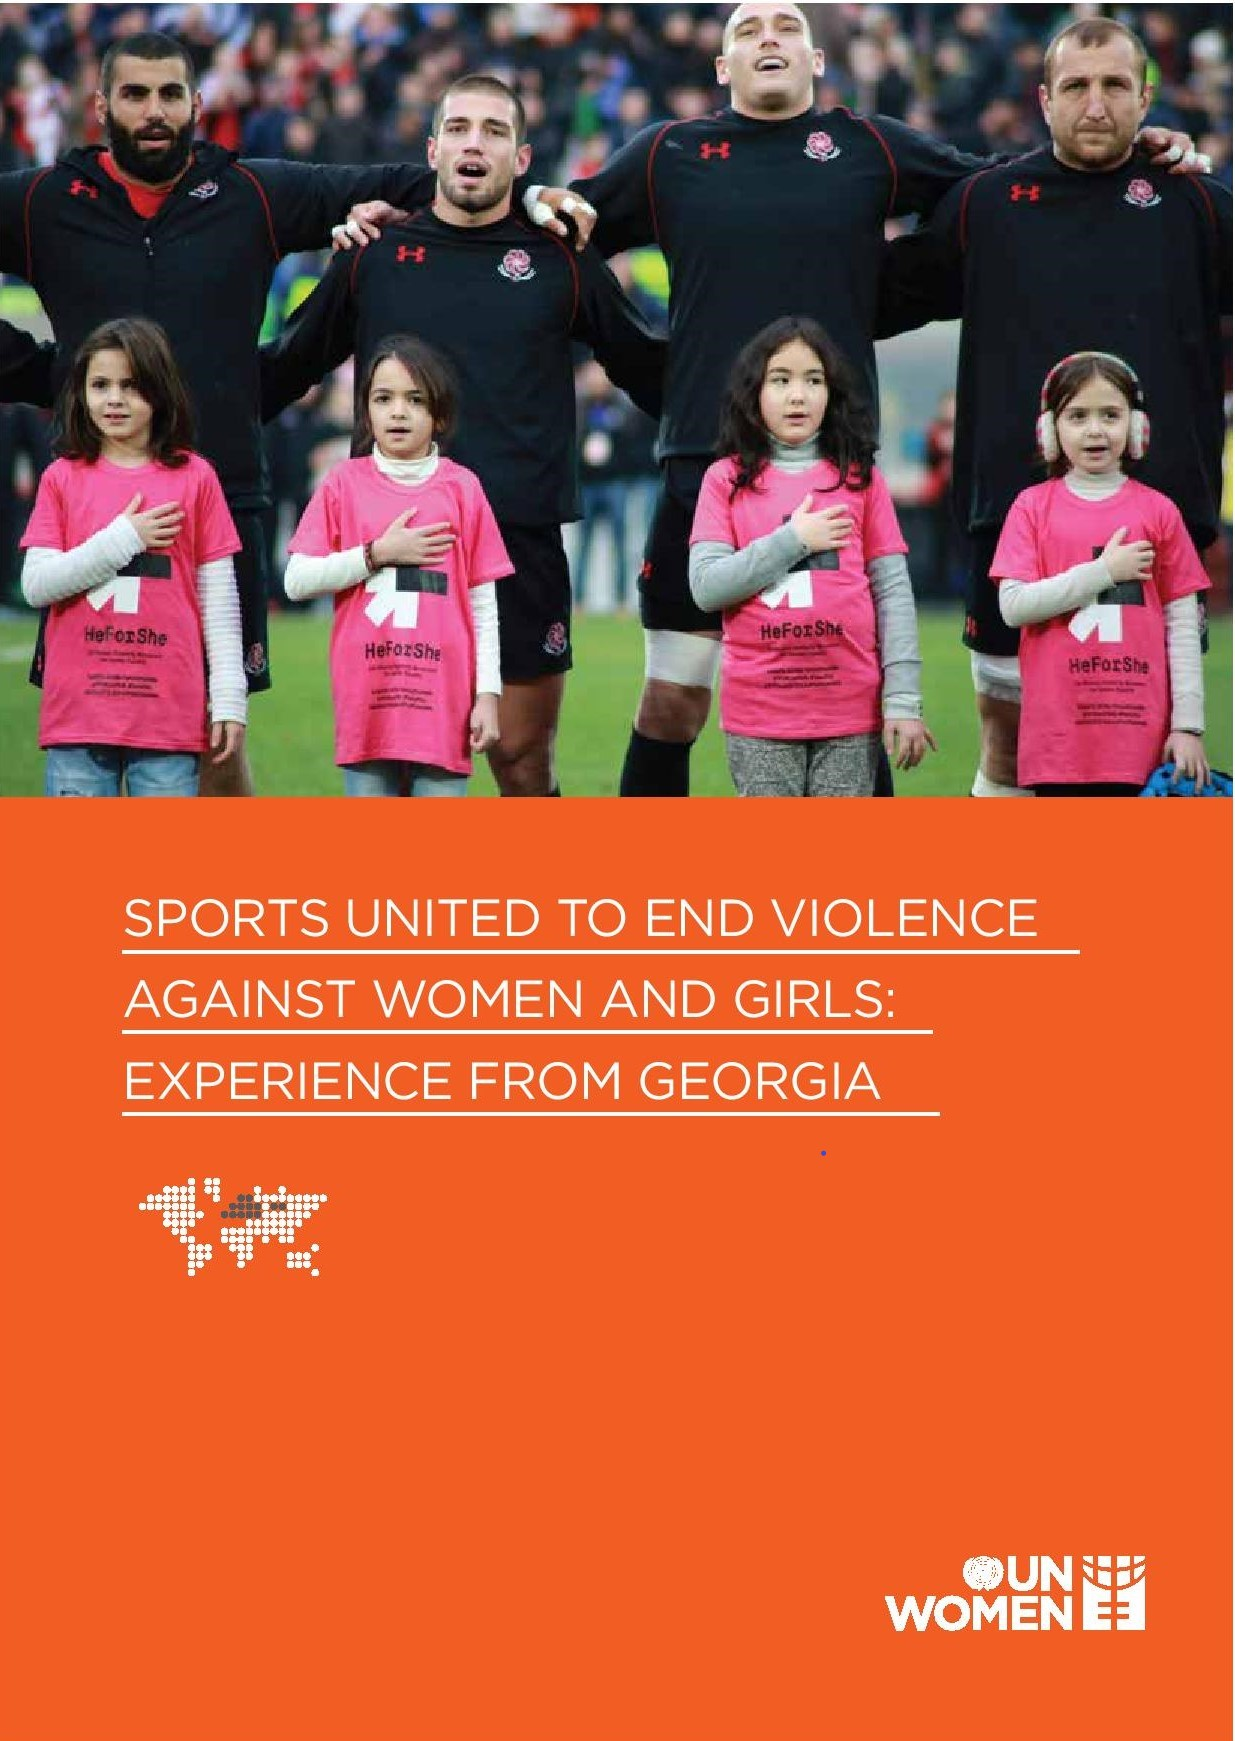 Sports united to End Violence against Women and Girls: Experience from Georgia